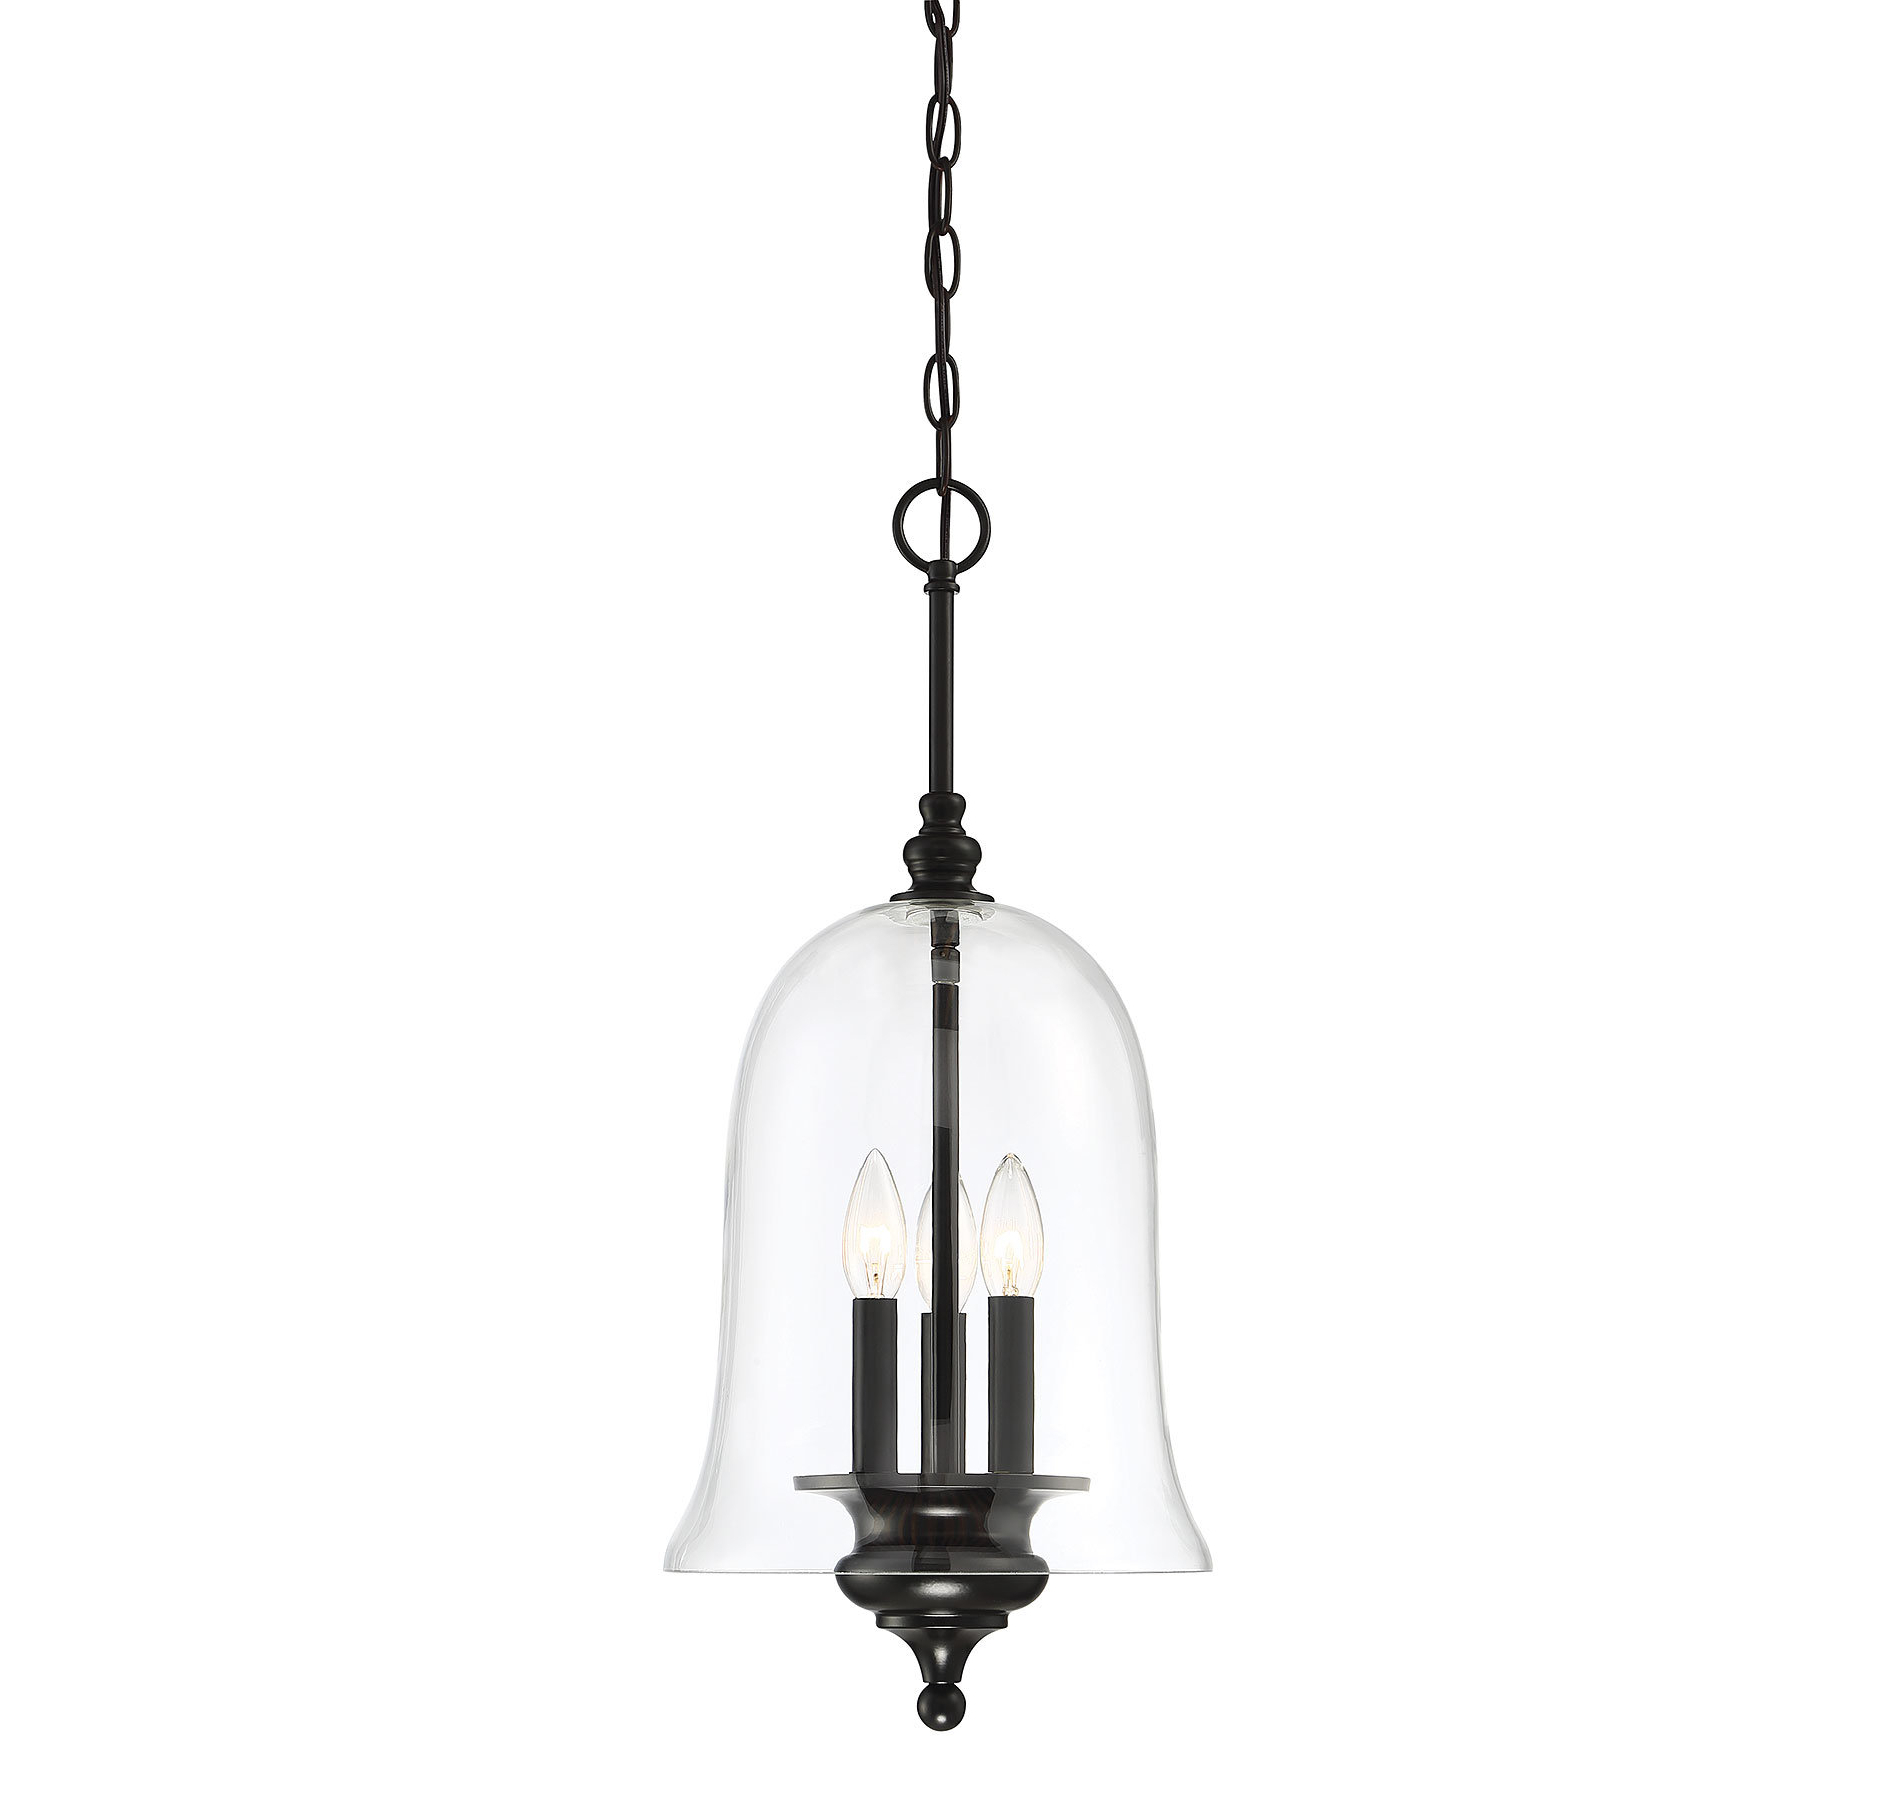 Youngberg 3-Light Single Bell Pendant intended for Famous Kierra 4-Light Unique / Statement Chandeliers